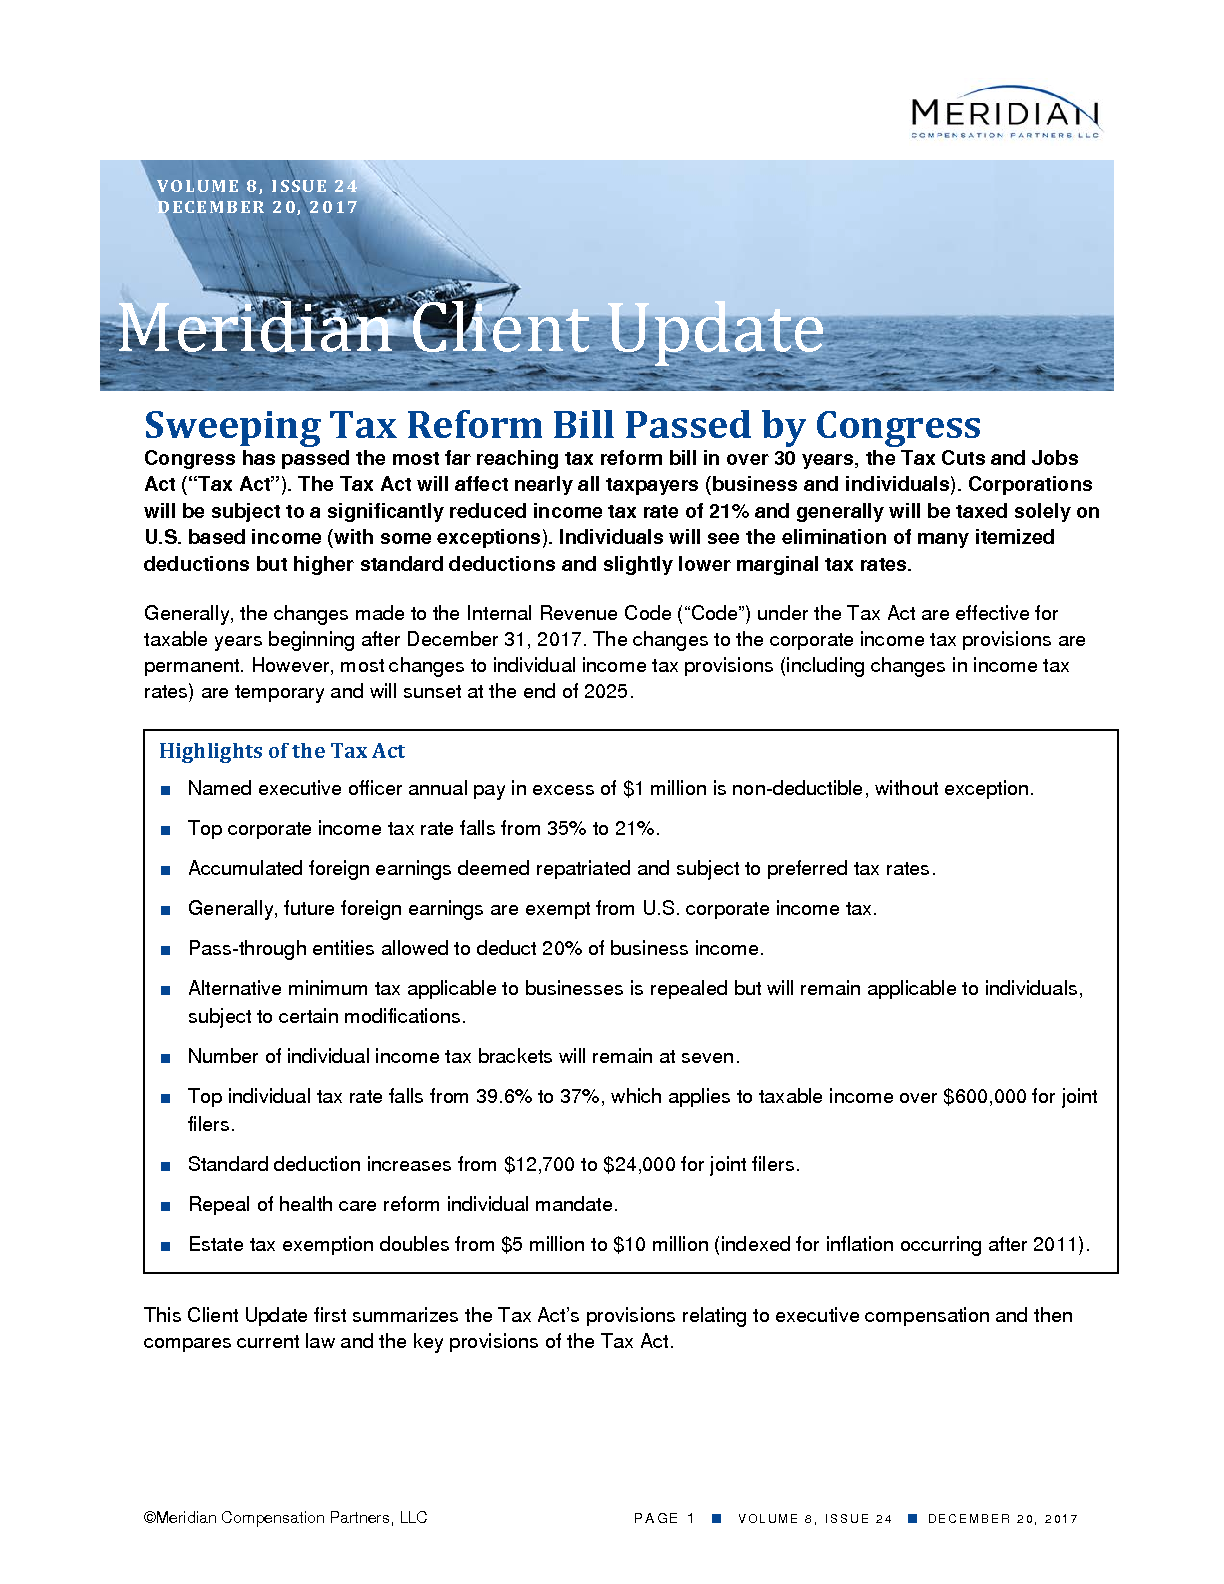 Sweeping Tax Reform Bill Passed by Congress (PDF)